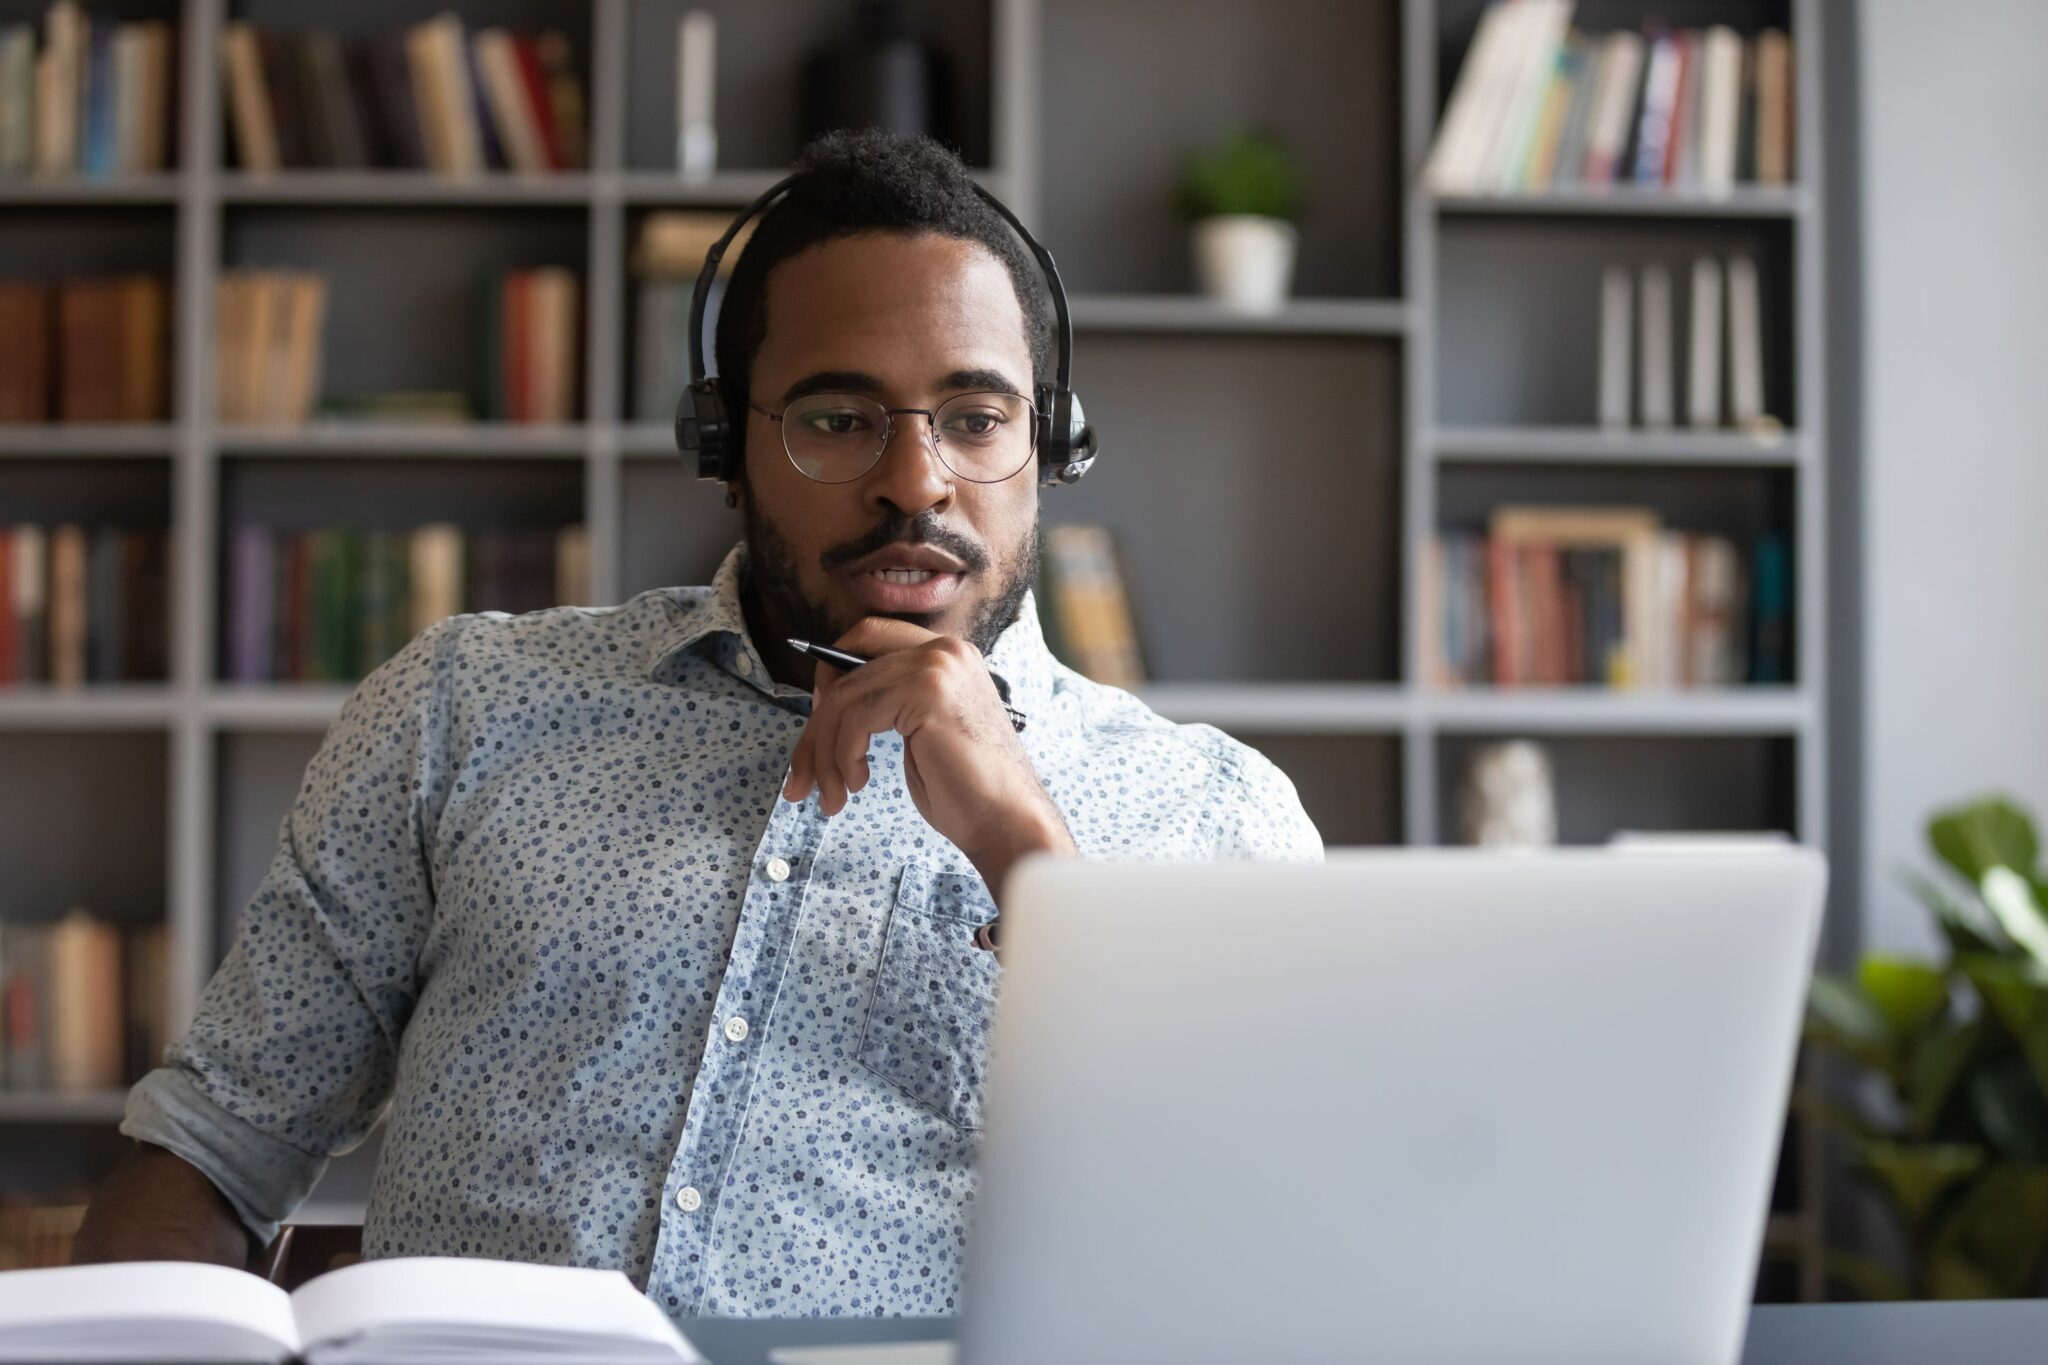 man working with headphones on